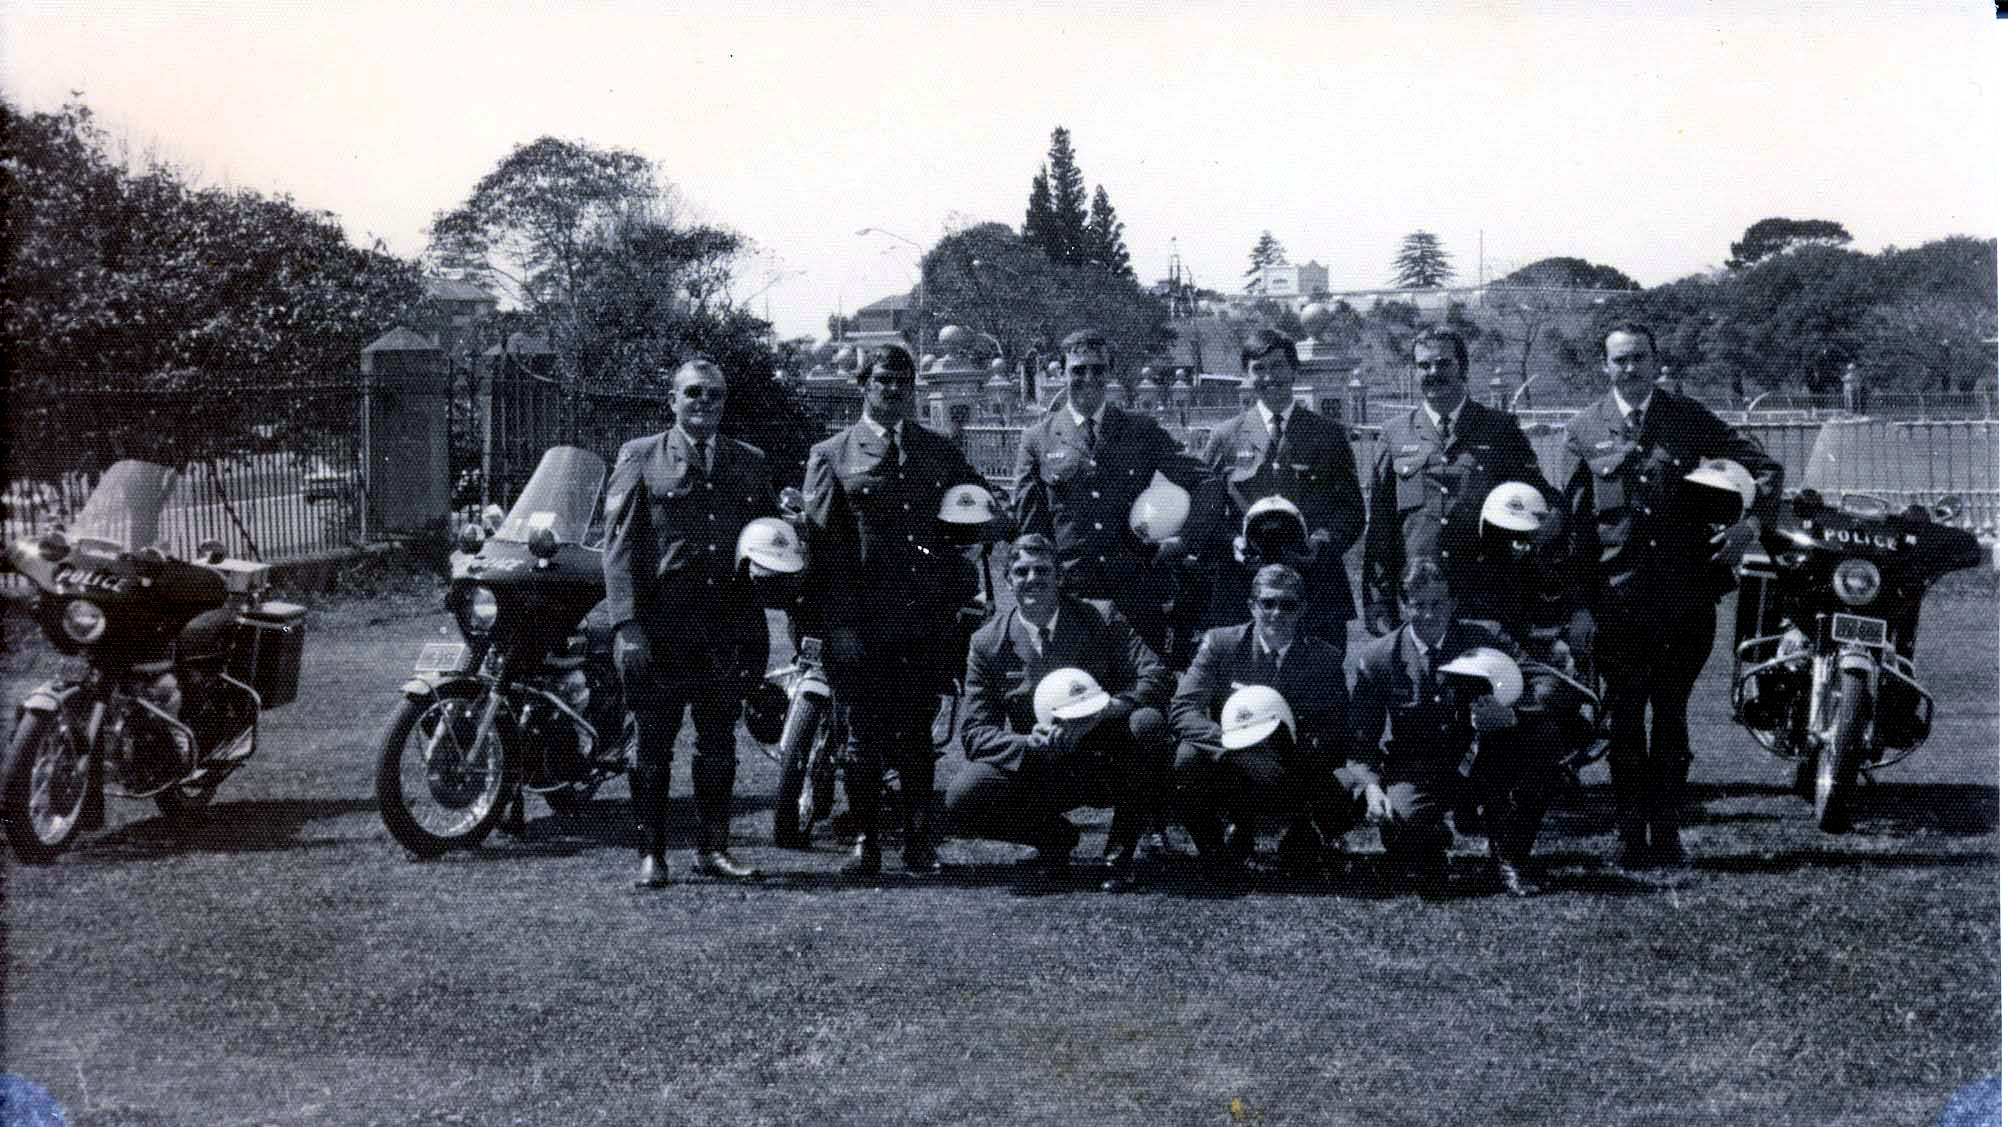 The cyclists from Waverley about 1972-73.<br /> From left: Sgt Ron Thompson (RIP The best!) Johnny Andrews, Chris Bult, Dana Jennings, Ian Granland, Peter Moffitt,<br /> (front row) Alan Ring, Gary Luff and Johnny Murphy<br /> Photo taken at Centennial Park, on top of the old water tank - just off Oxford St, Paddington.